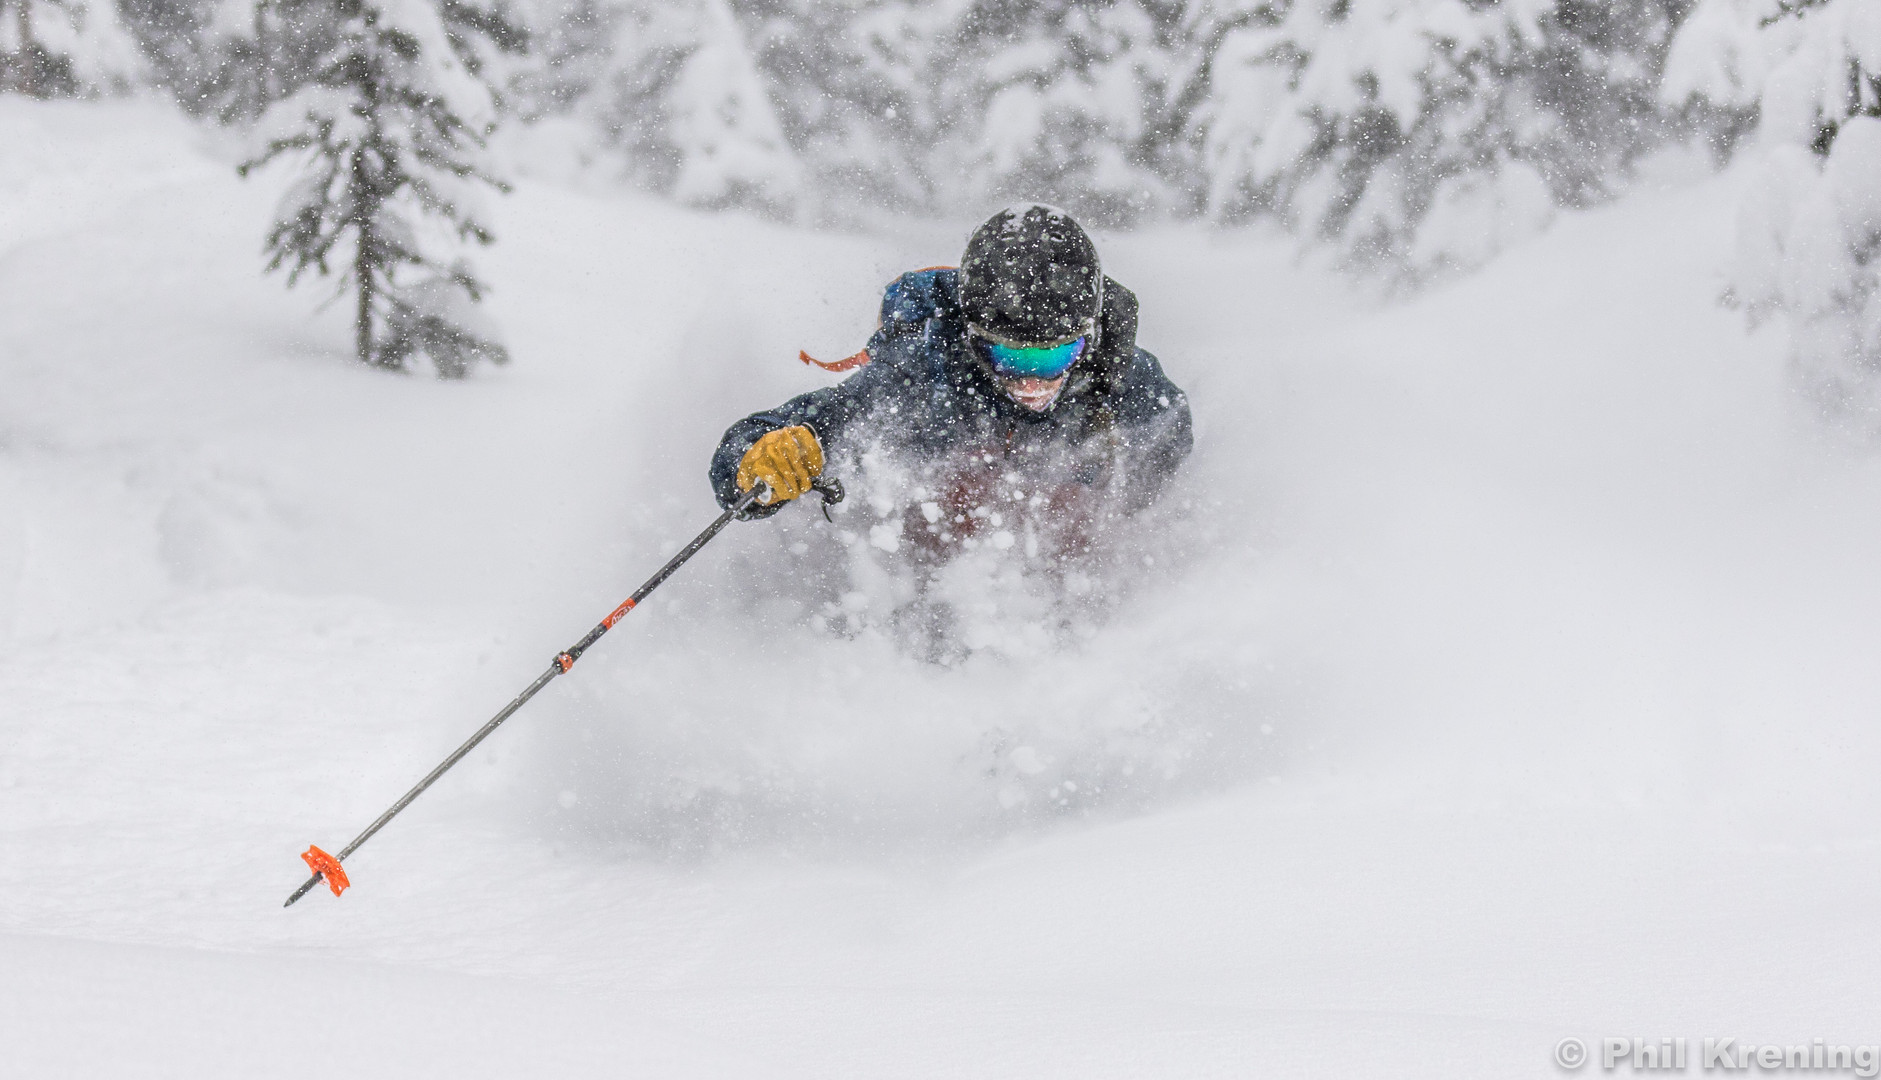 Donny in the powder cache